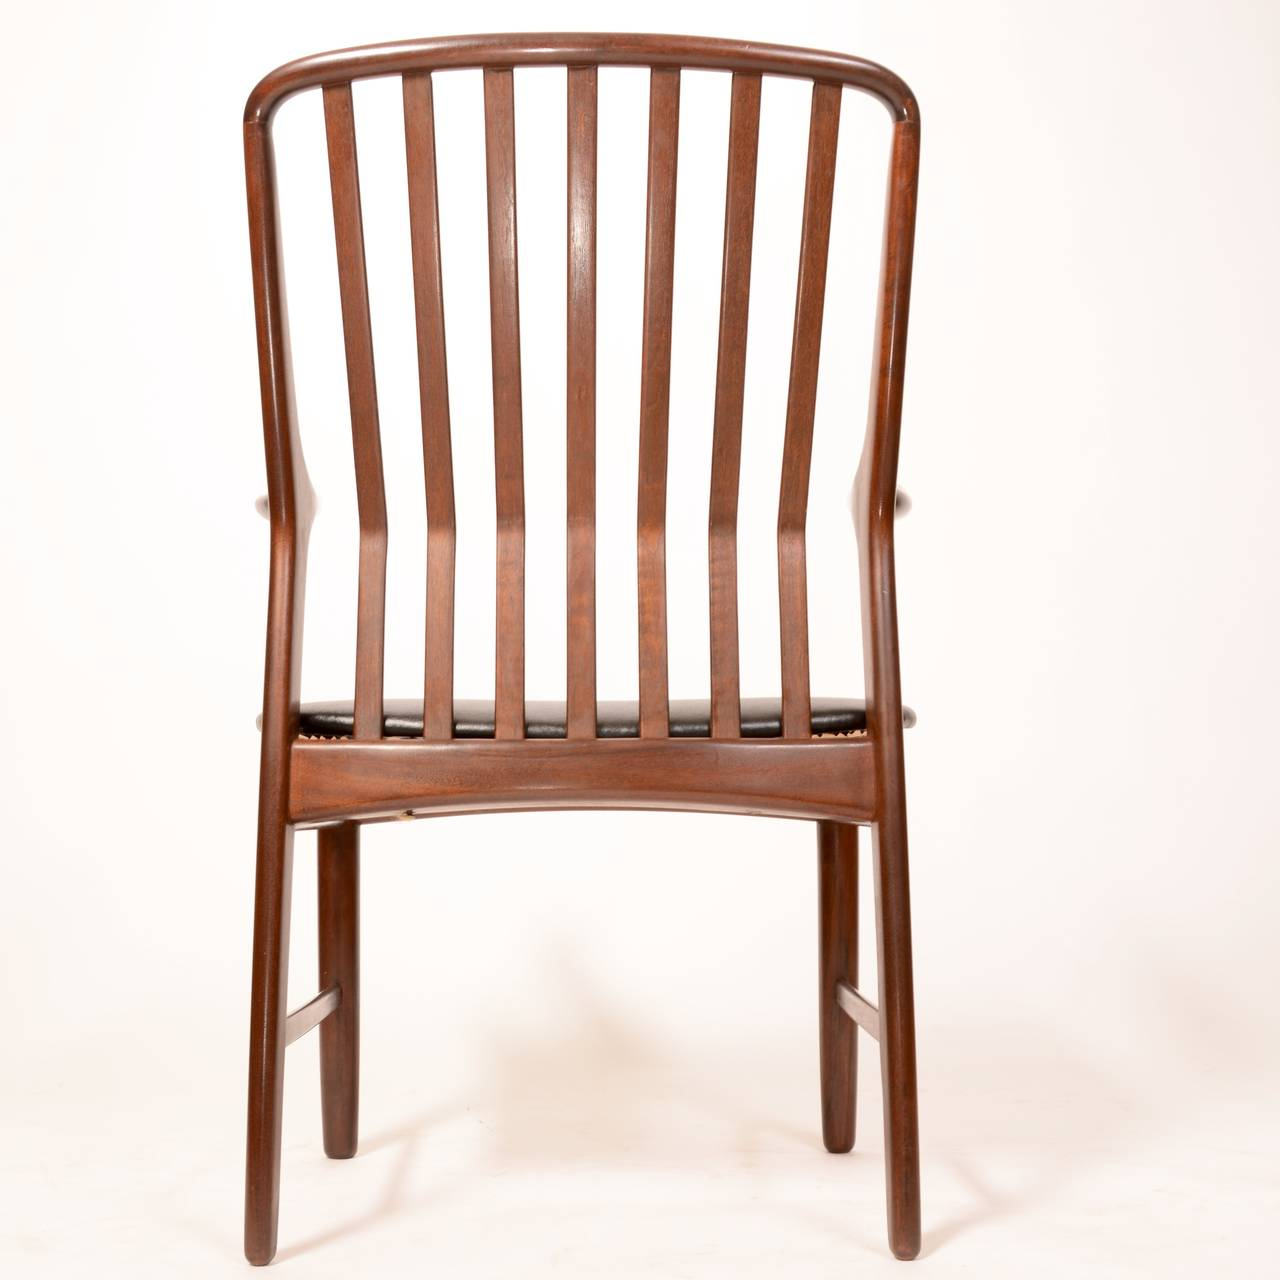 Danish Arm Chairs by Svend A. Madsen for Moreddi, Set of 2 6